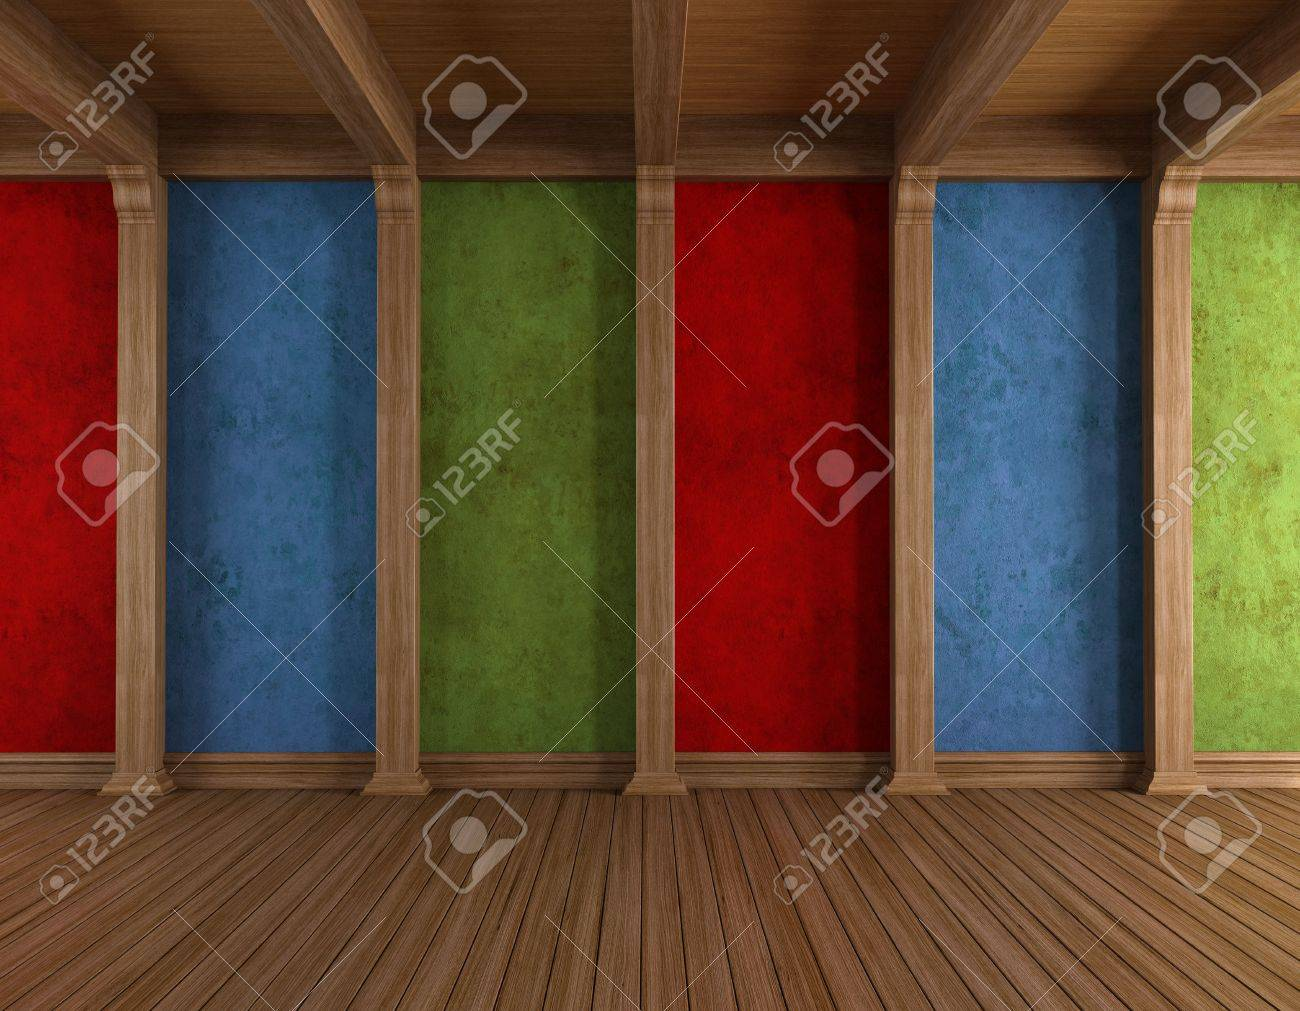 Vintage wooden room with colorful grunge walls - rendering Stock Photo - 17671075